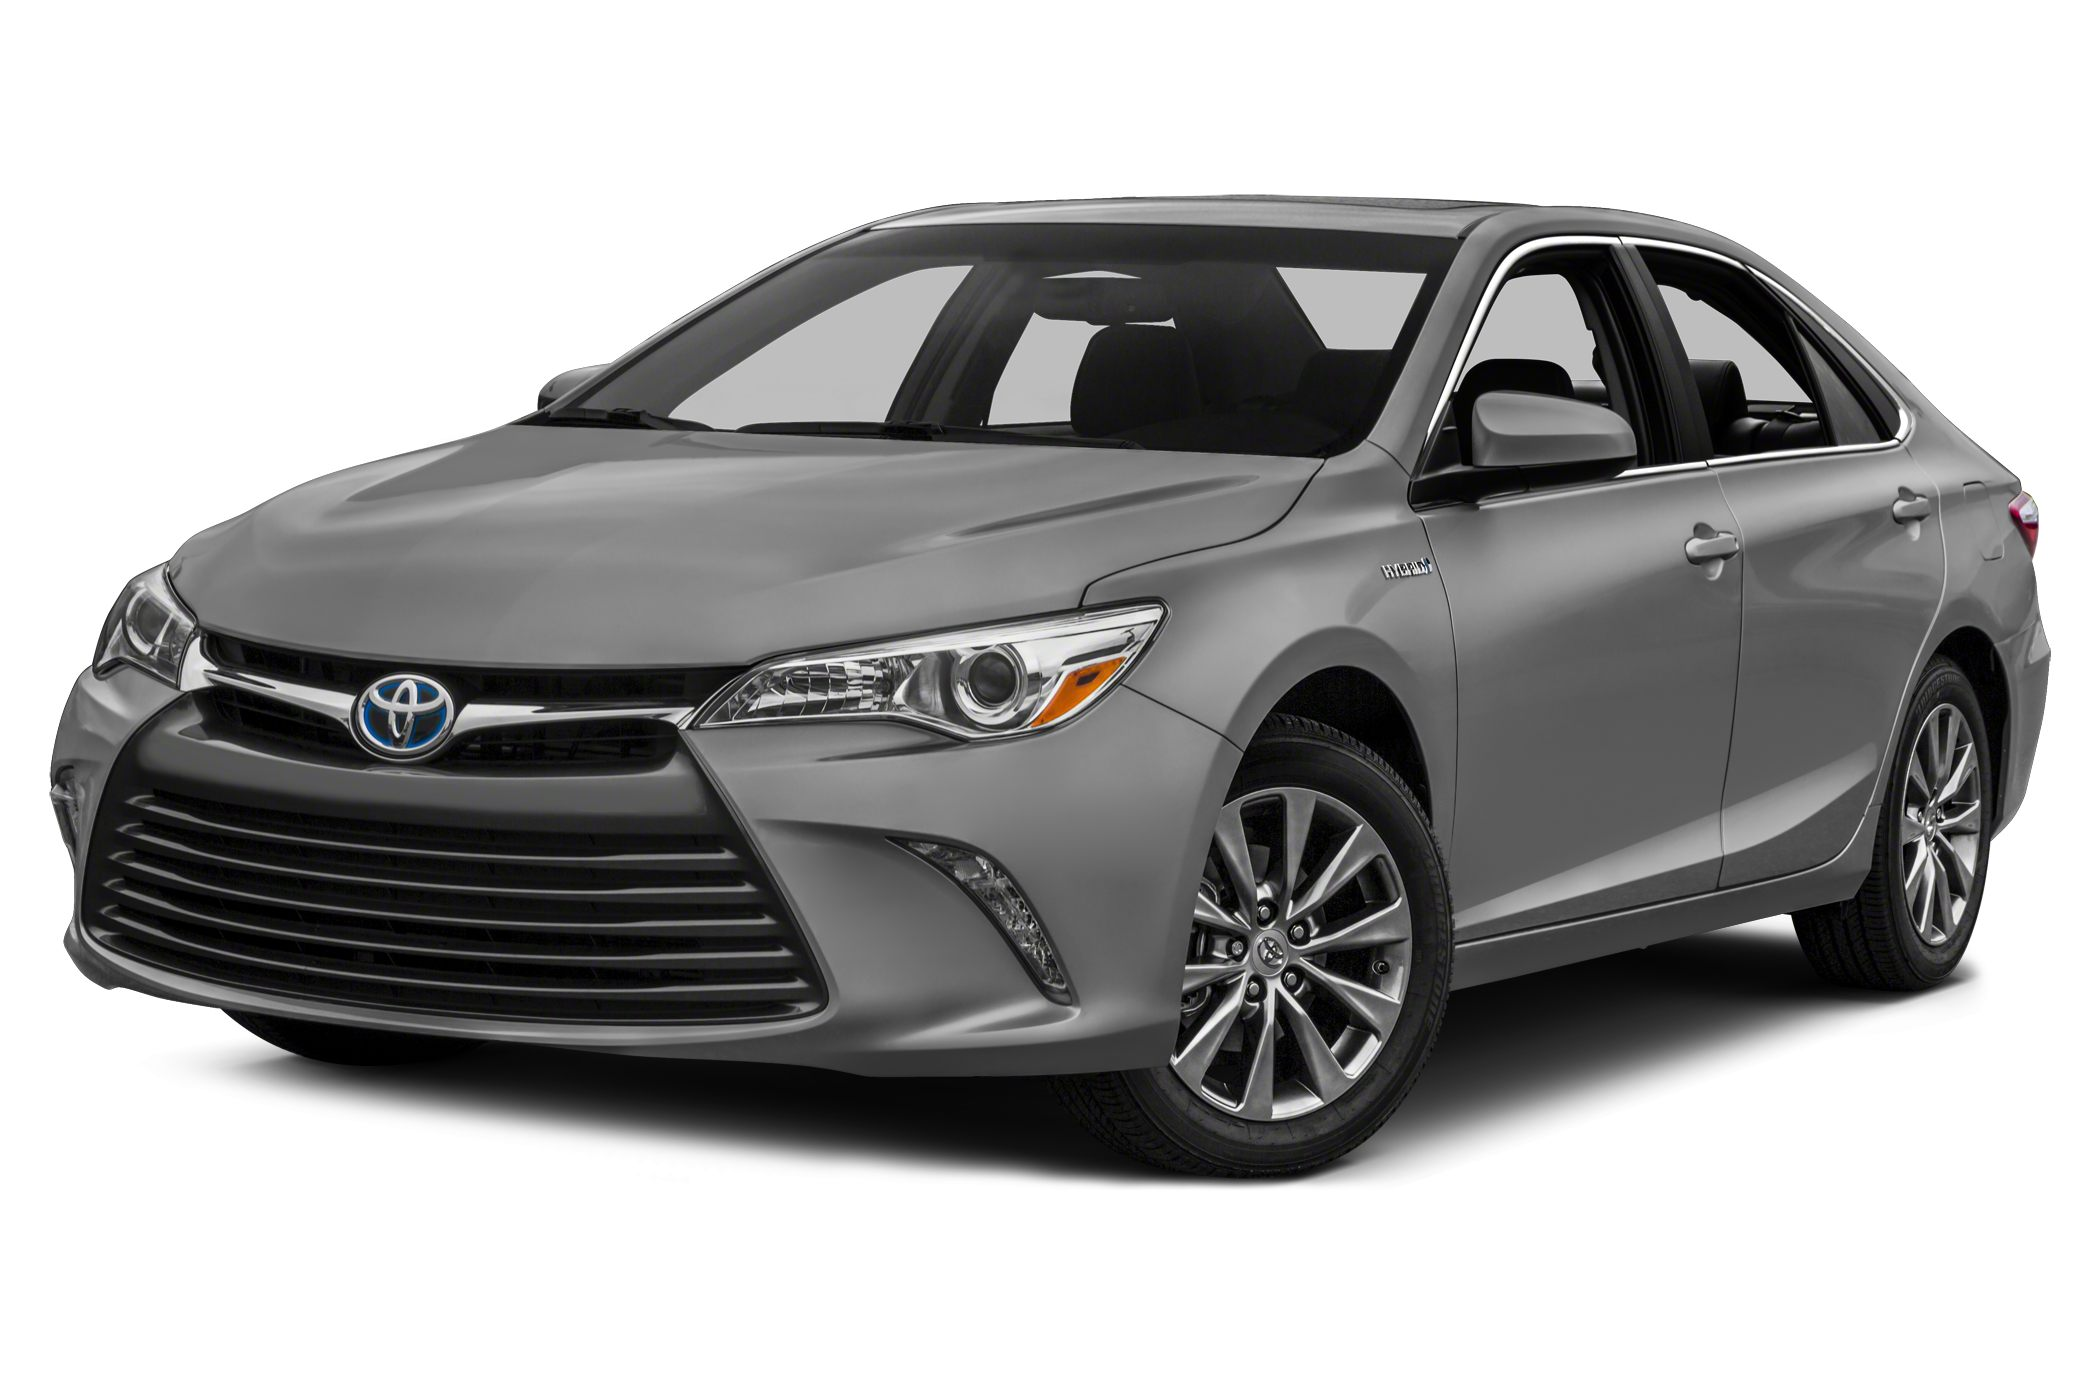 2015 Toyota Camry Hybrid SE Sedan for sale in Mentor for $29,660 with 0 miles.